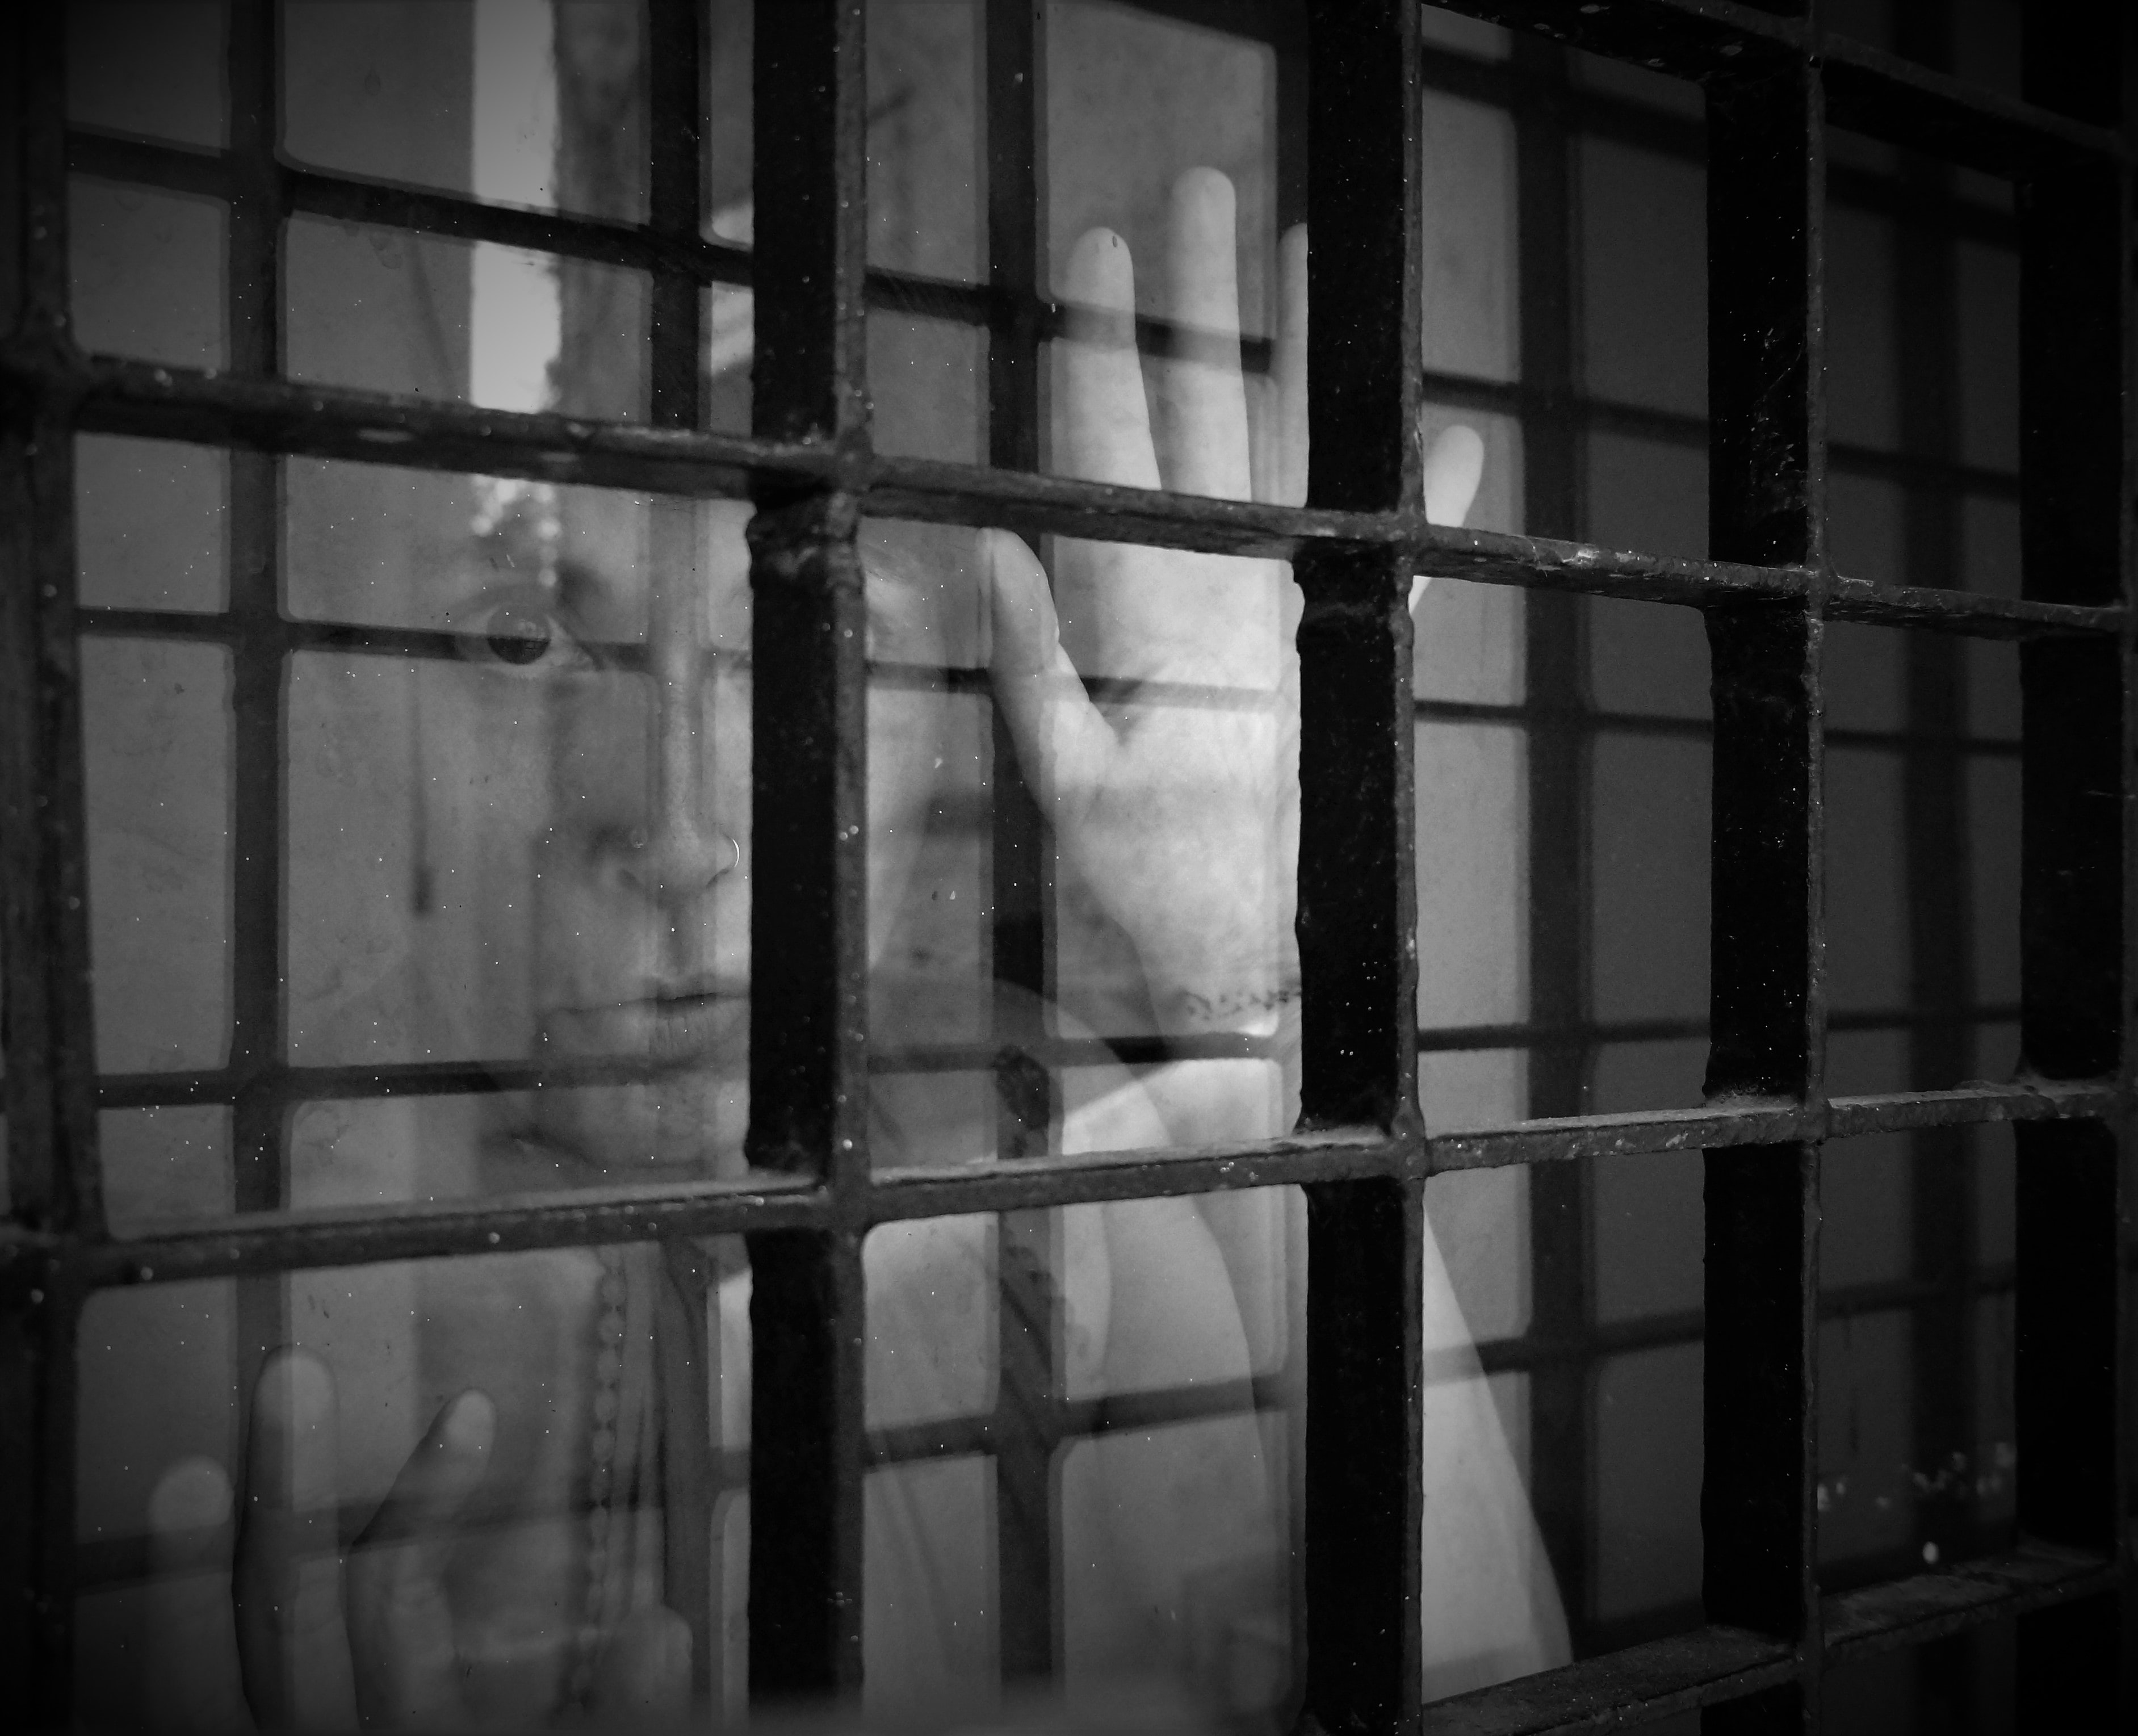 Person looking through caged window